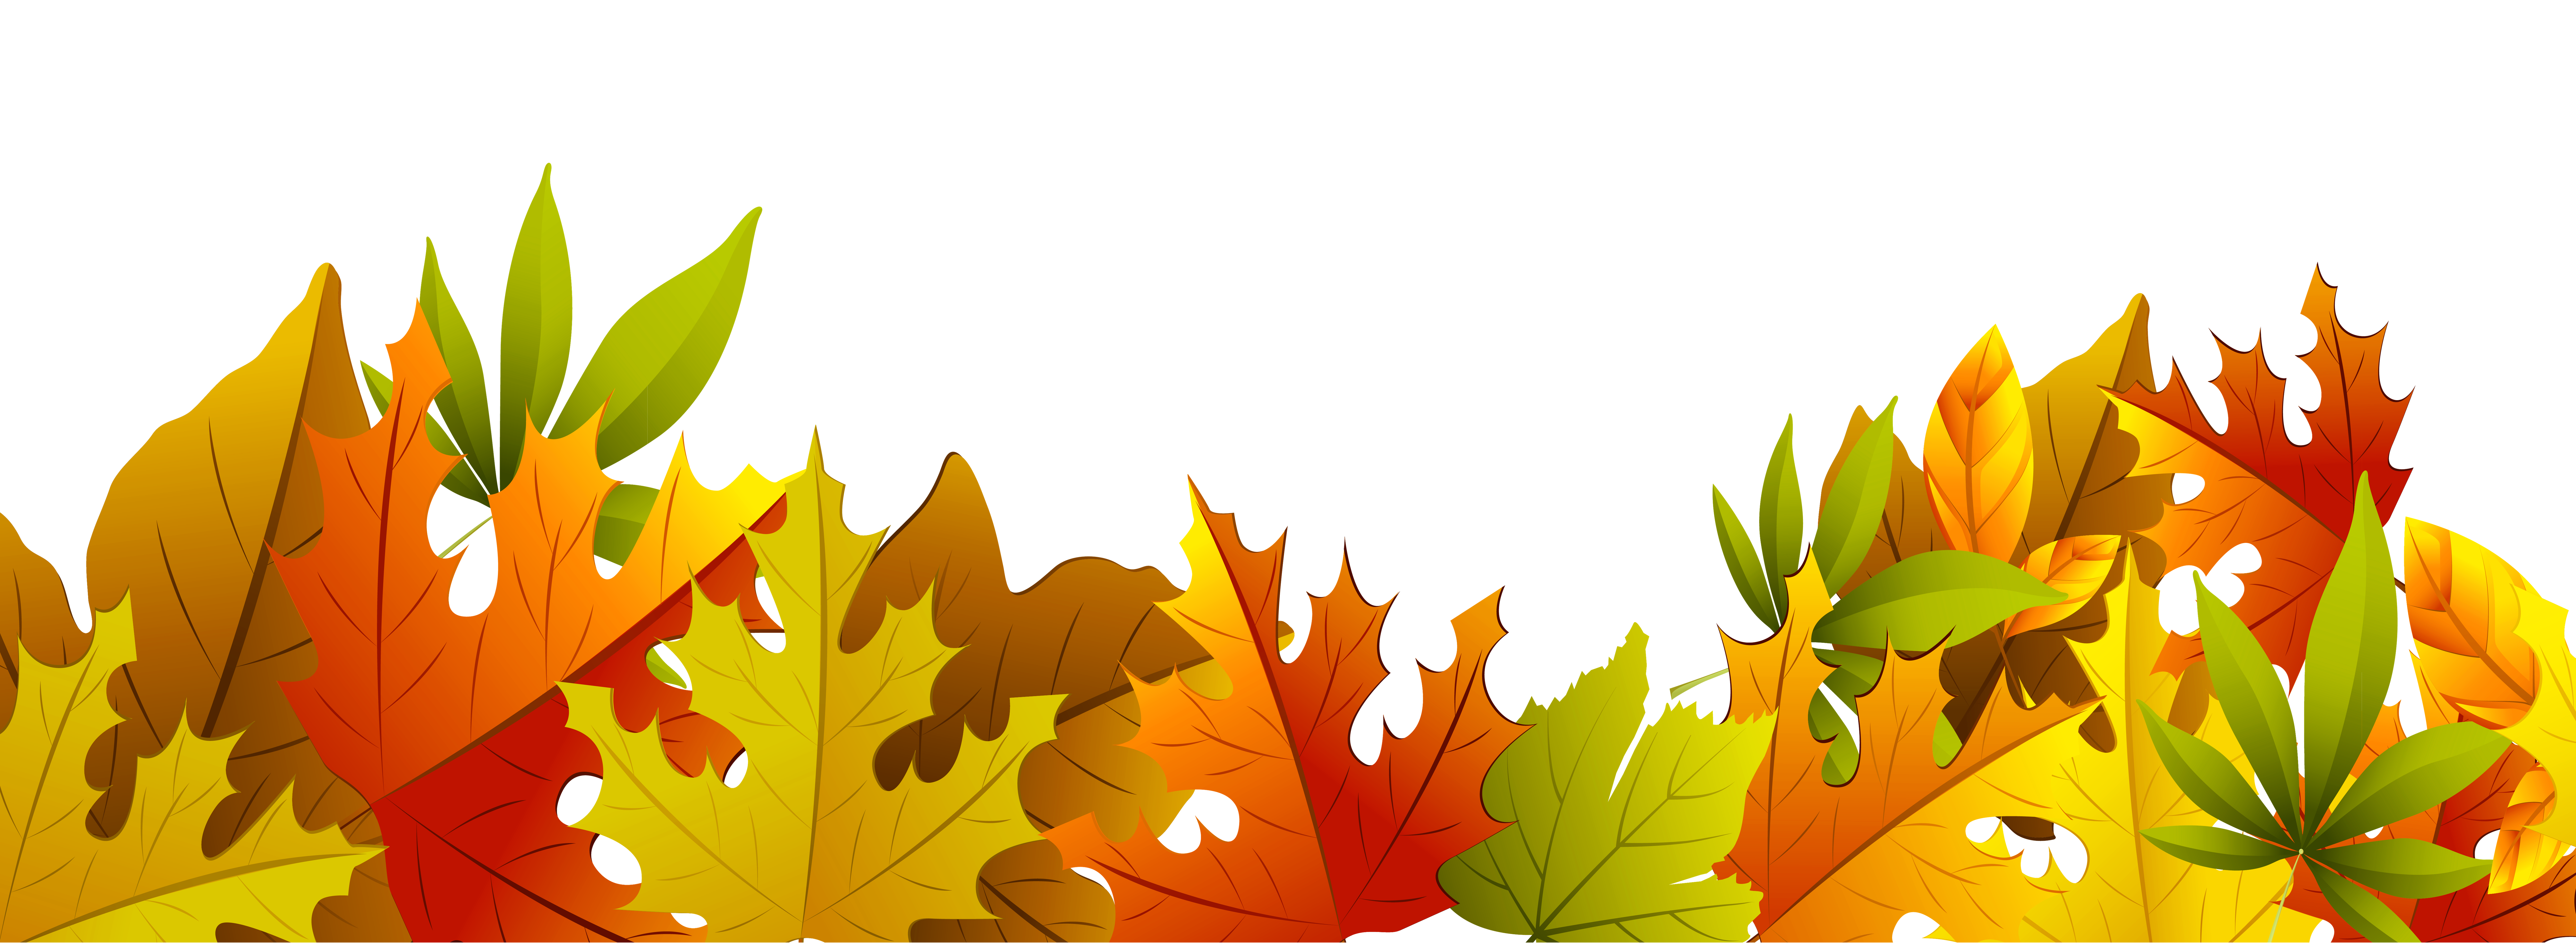 Fall leaves and pumpkin clipart png stock 28+ Collection of Fall Leaf Clipart Free | High quality, free ... png stock